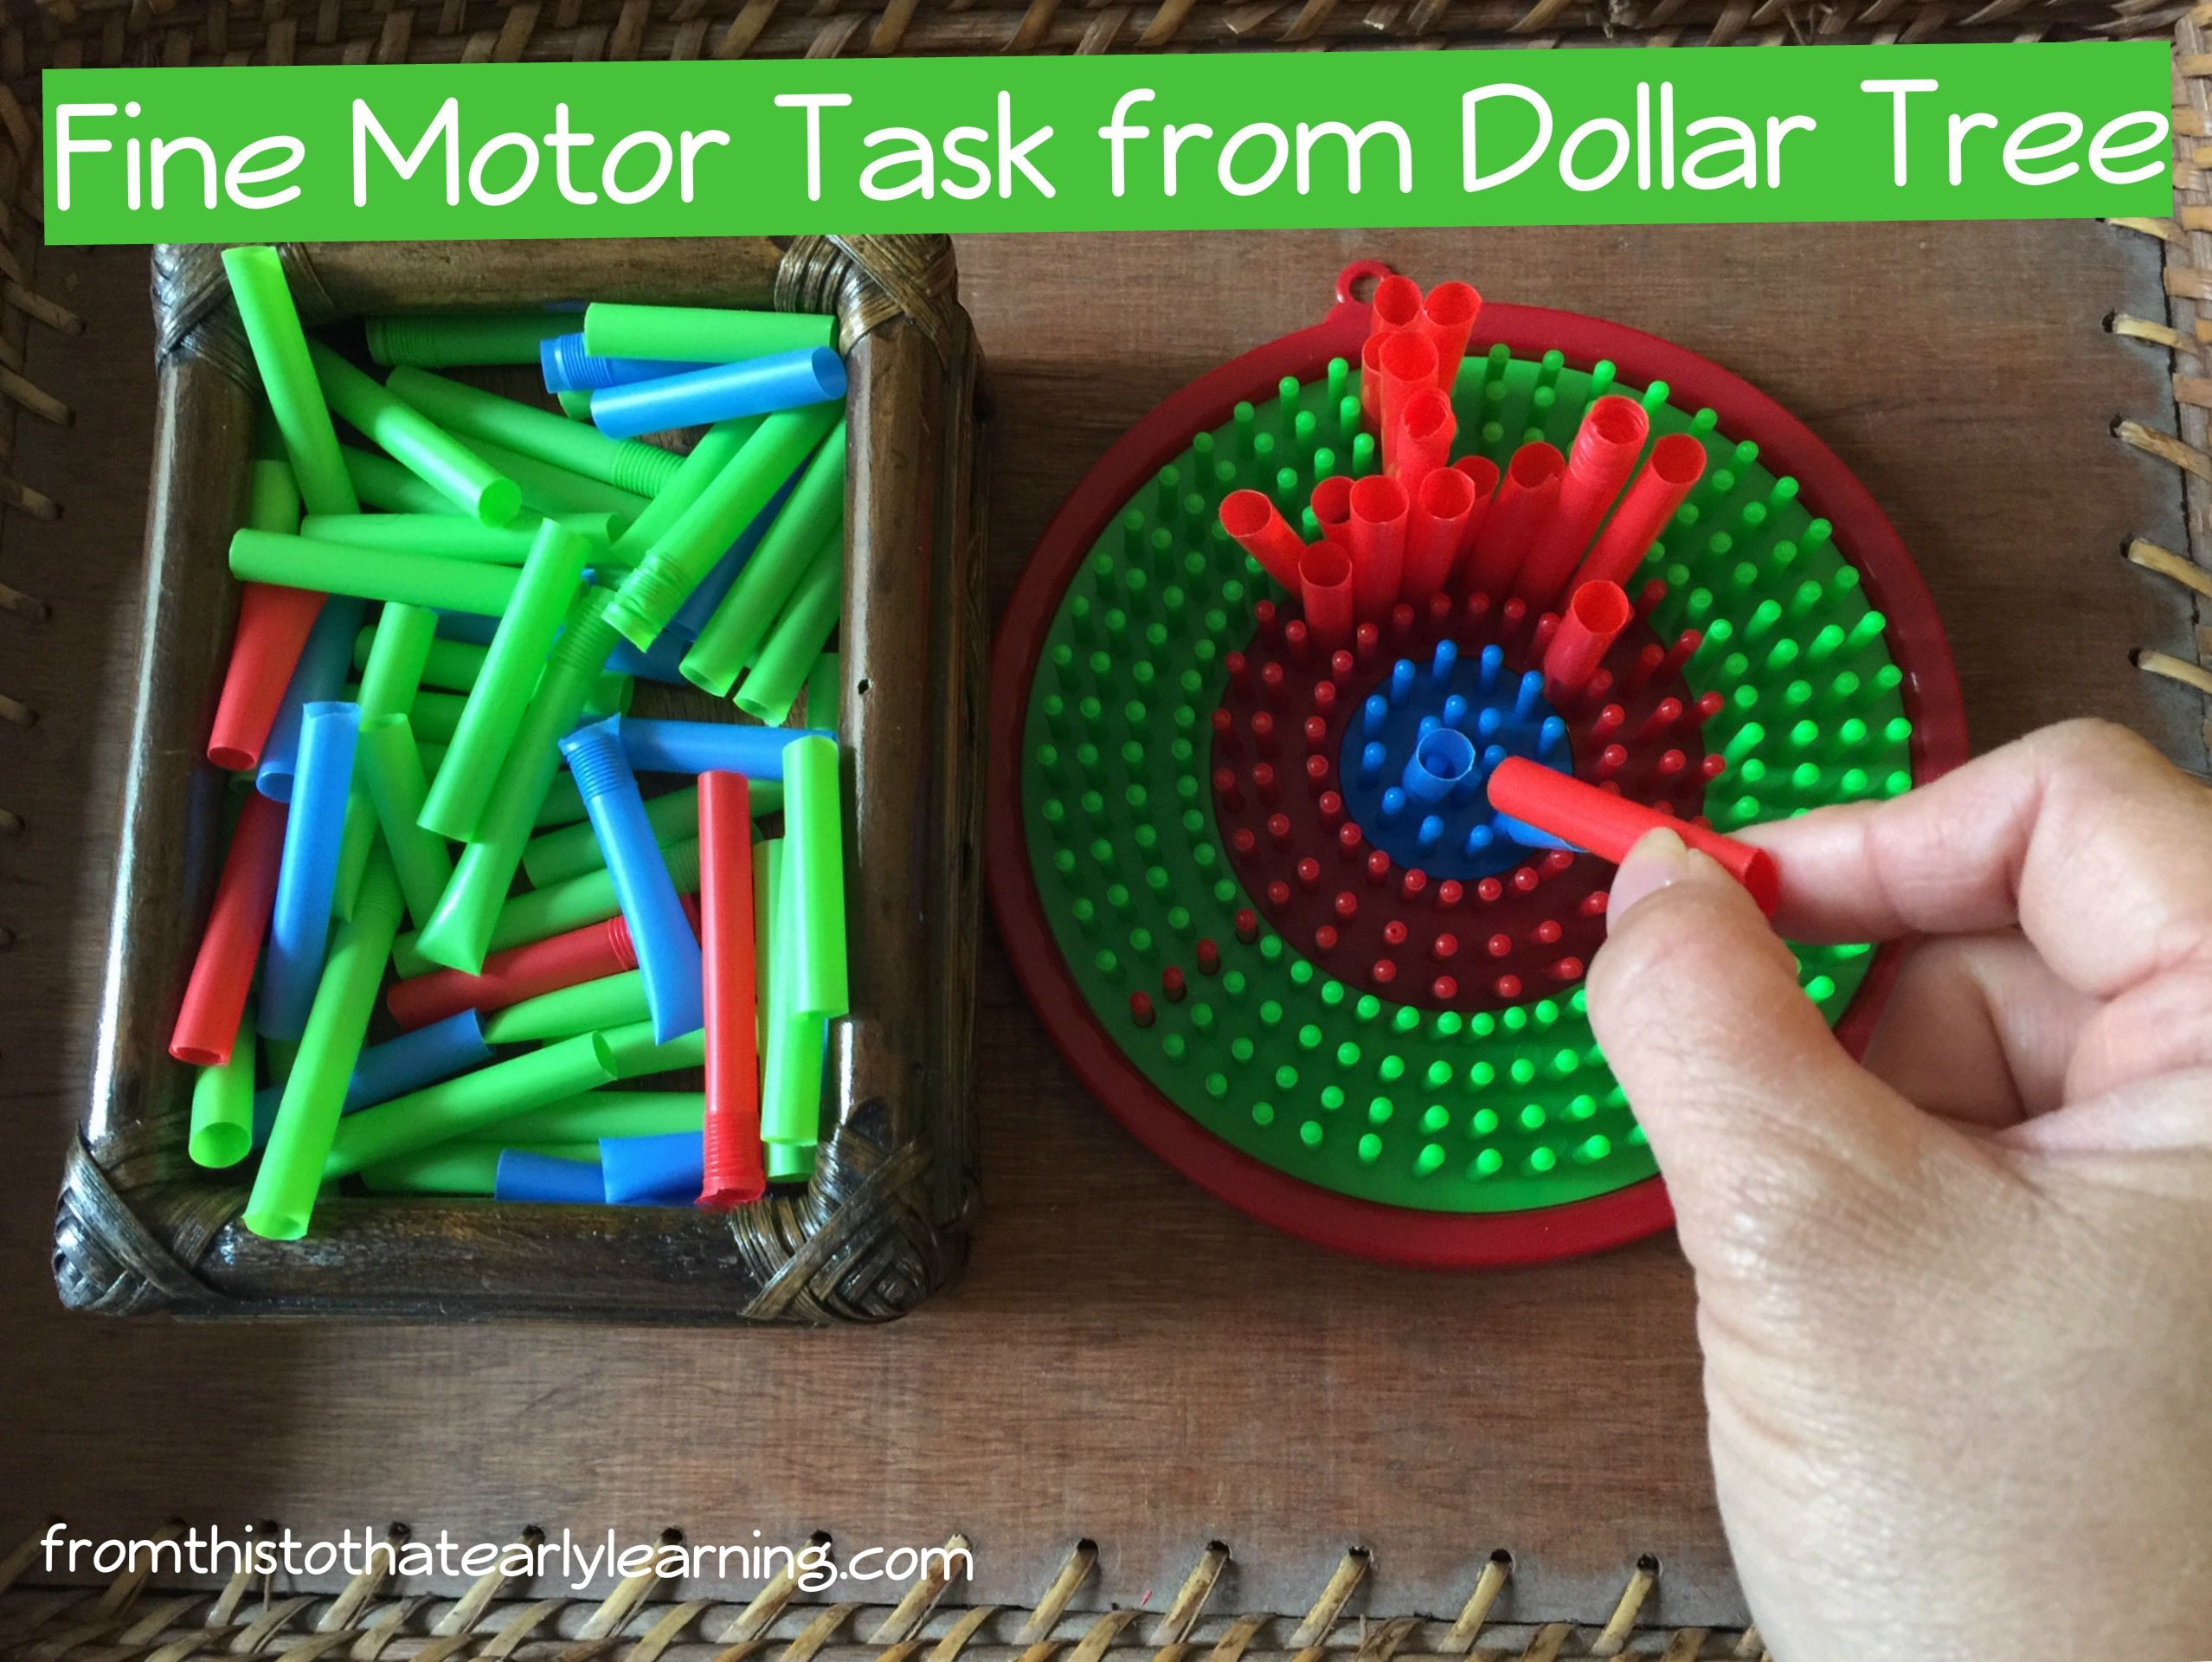 Fine Motor For 2 00 From Dollar Tree